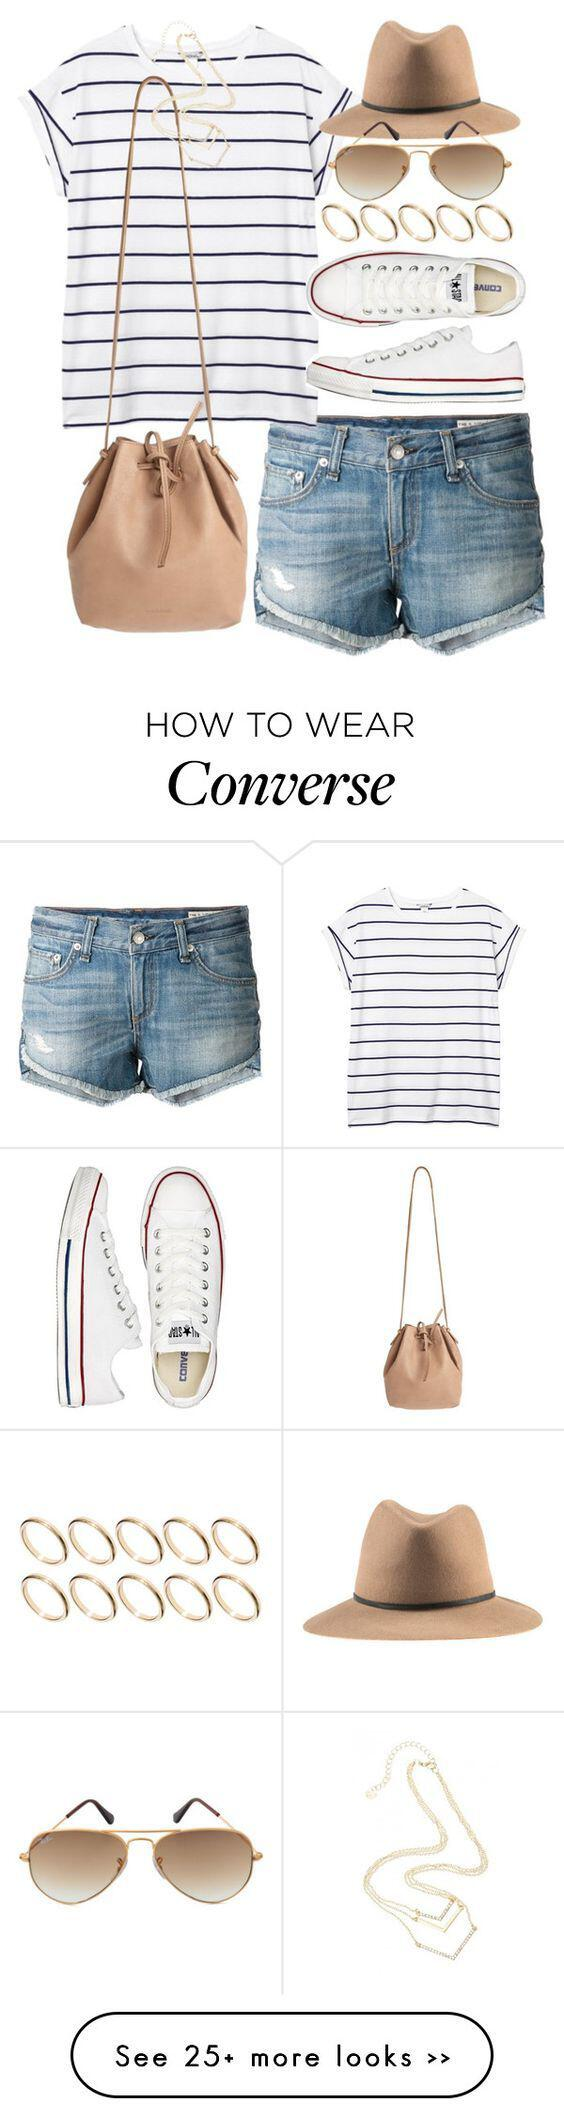 casual summer outfit women 5 best outfits 11 - 15 casual summer outfits for women to wear all day